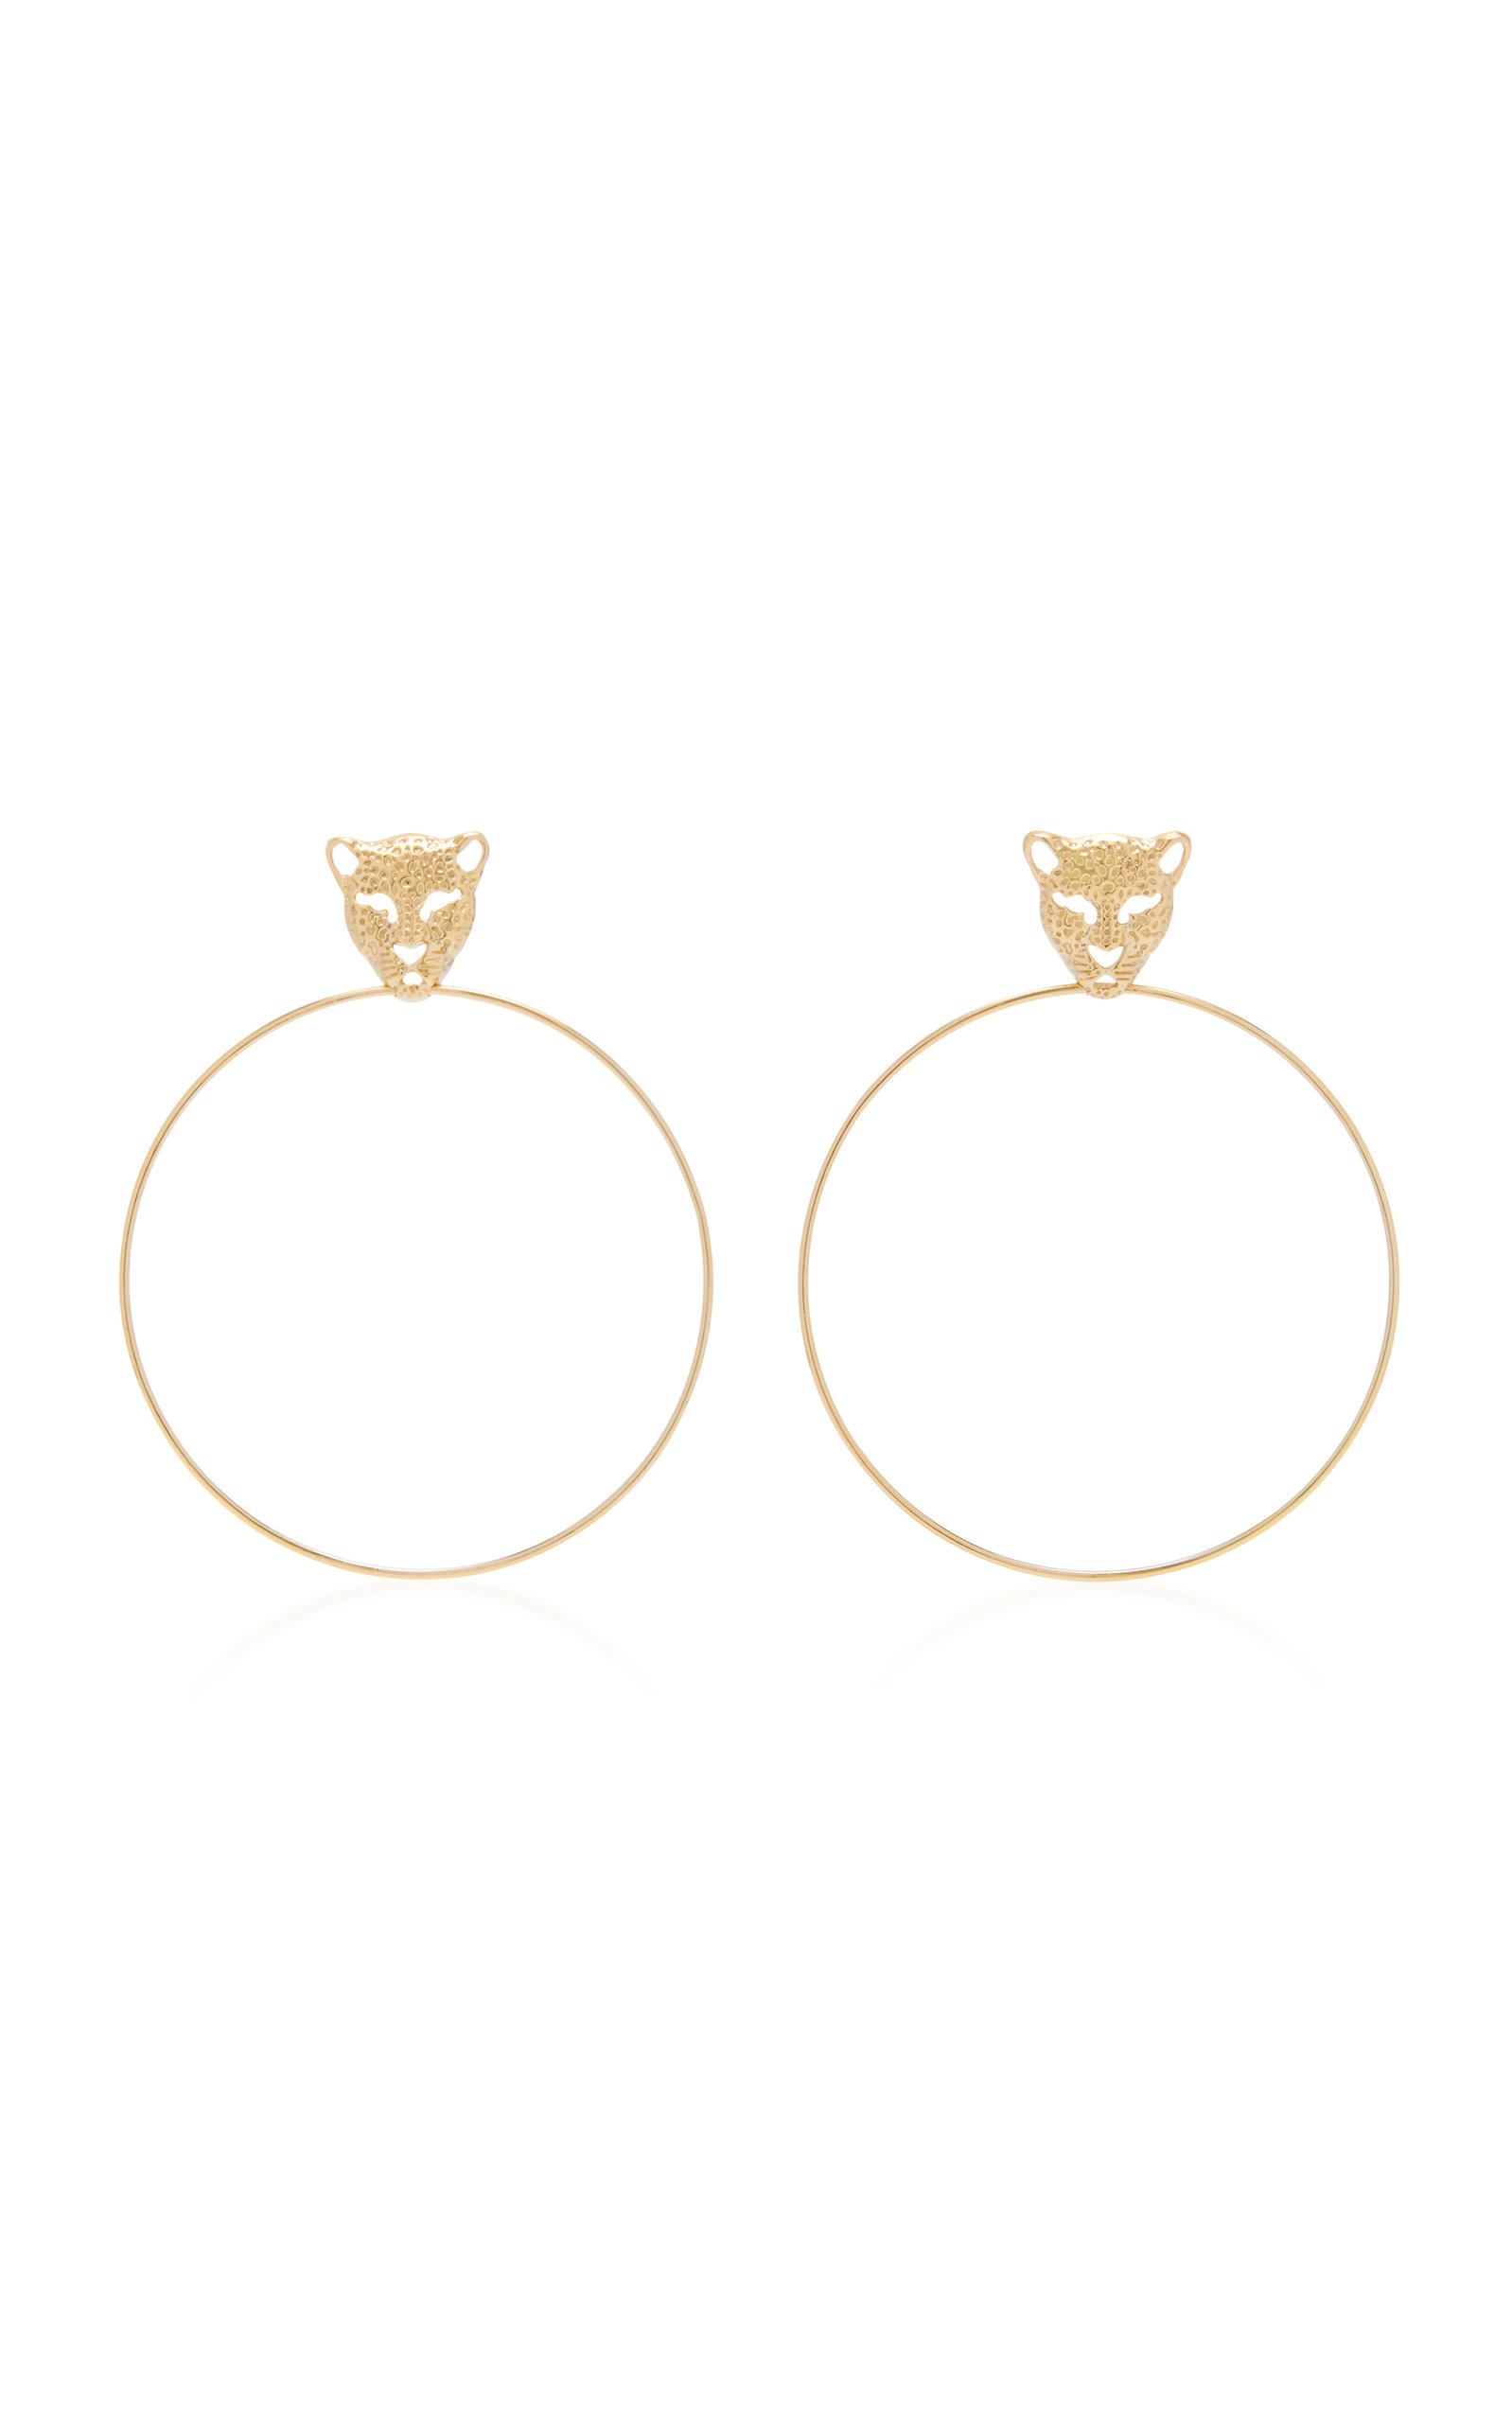 DONNA HOURANI 18K GOLD LEOPARD EARRINGS